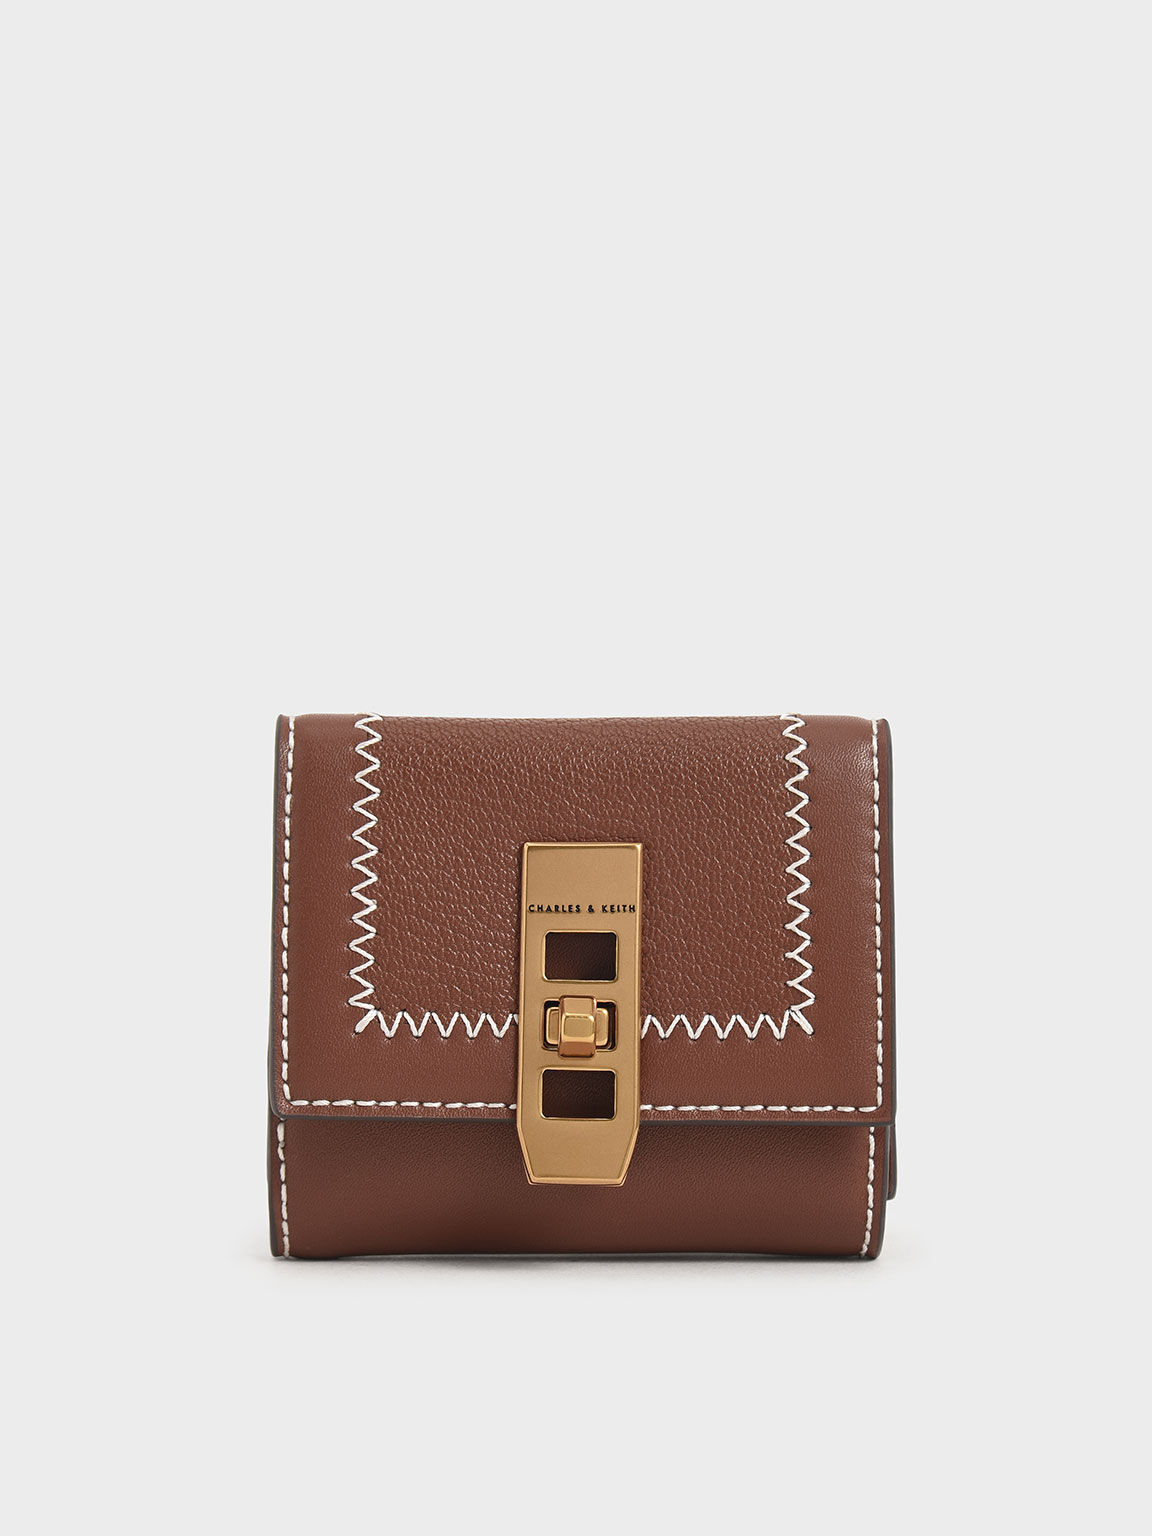 Stitch Trim Turn Lock Wallet, Chocolate, hi-res